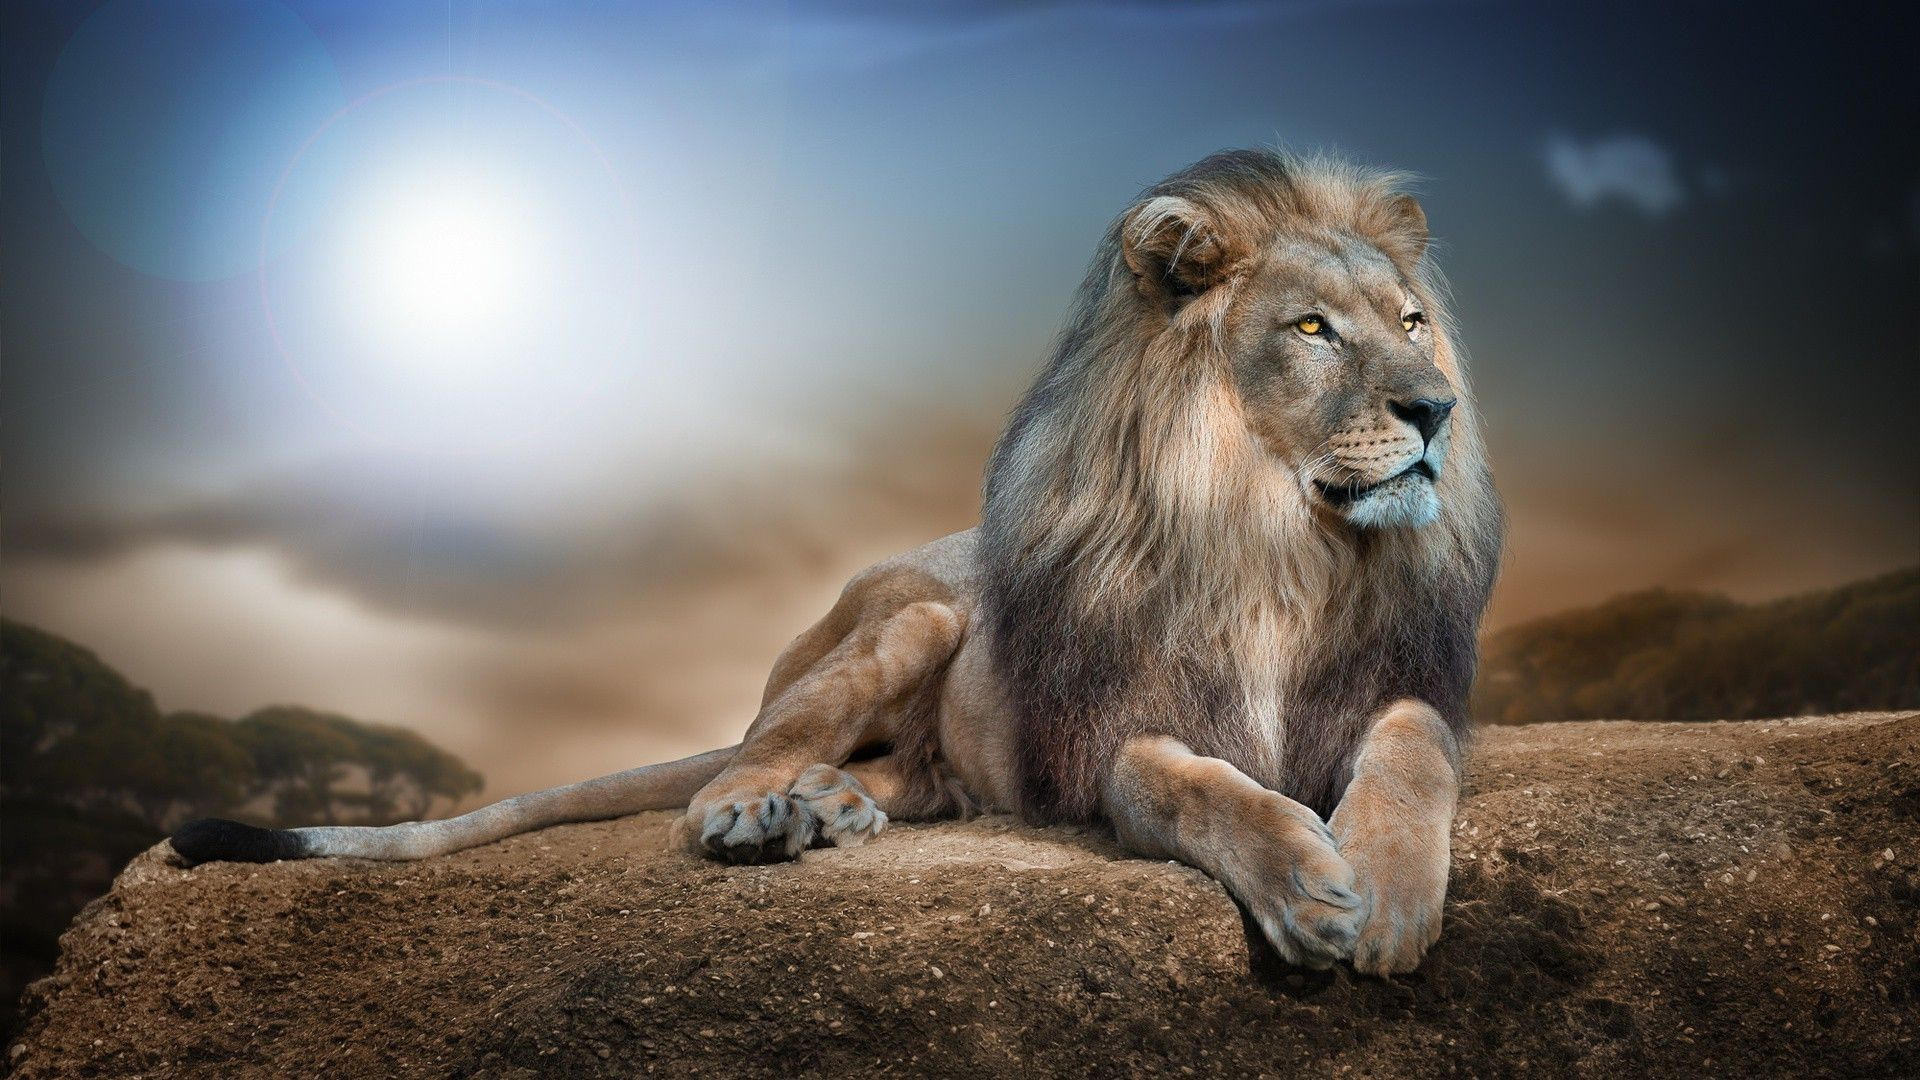 10 Top Wild Animal Wall Paper Full Hd 1080p For Pc Desktop Lions Photos Wild Animal Wallpaper Lion Wallpaper